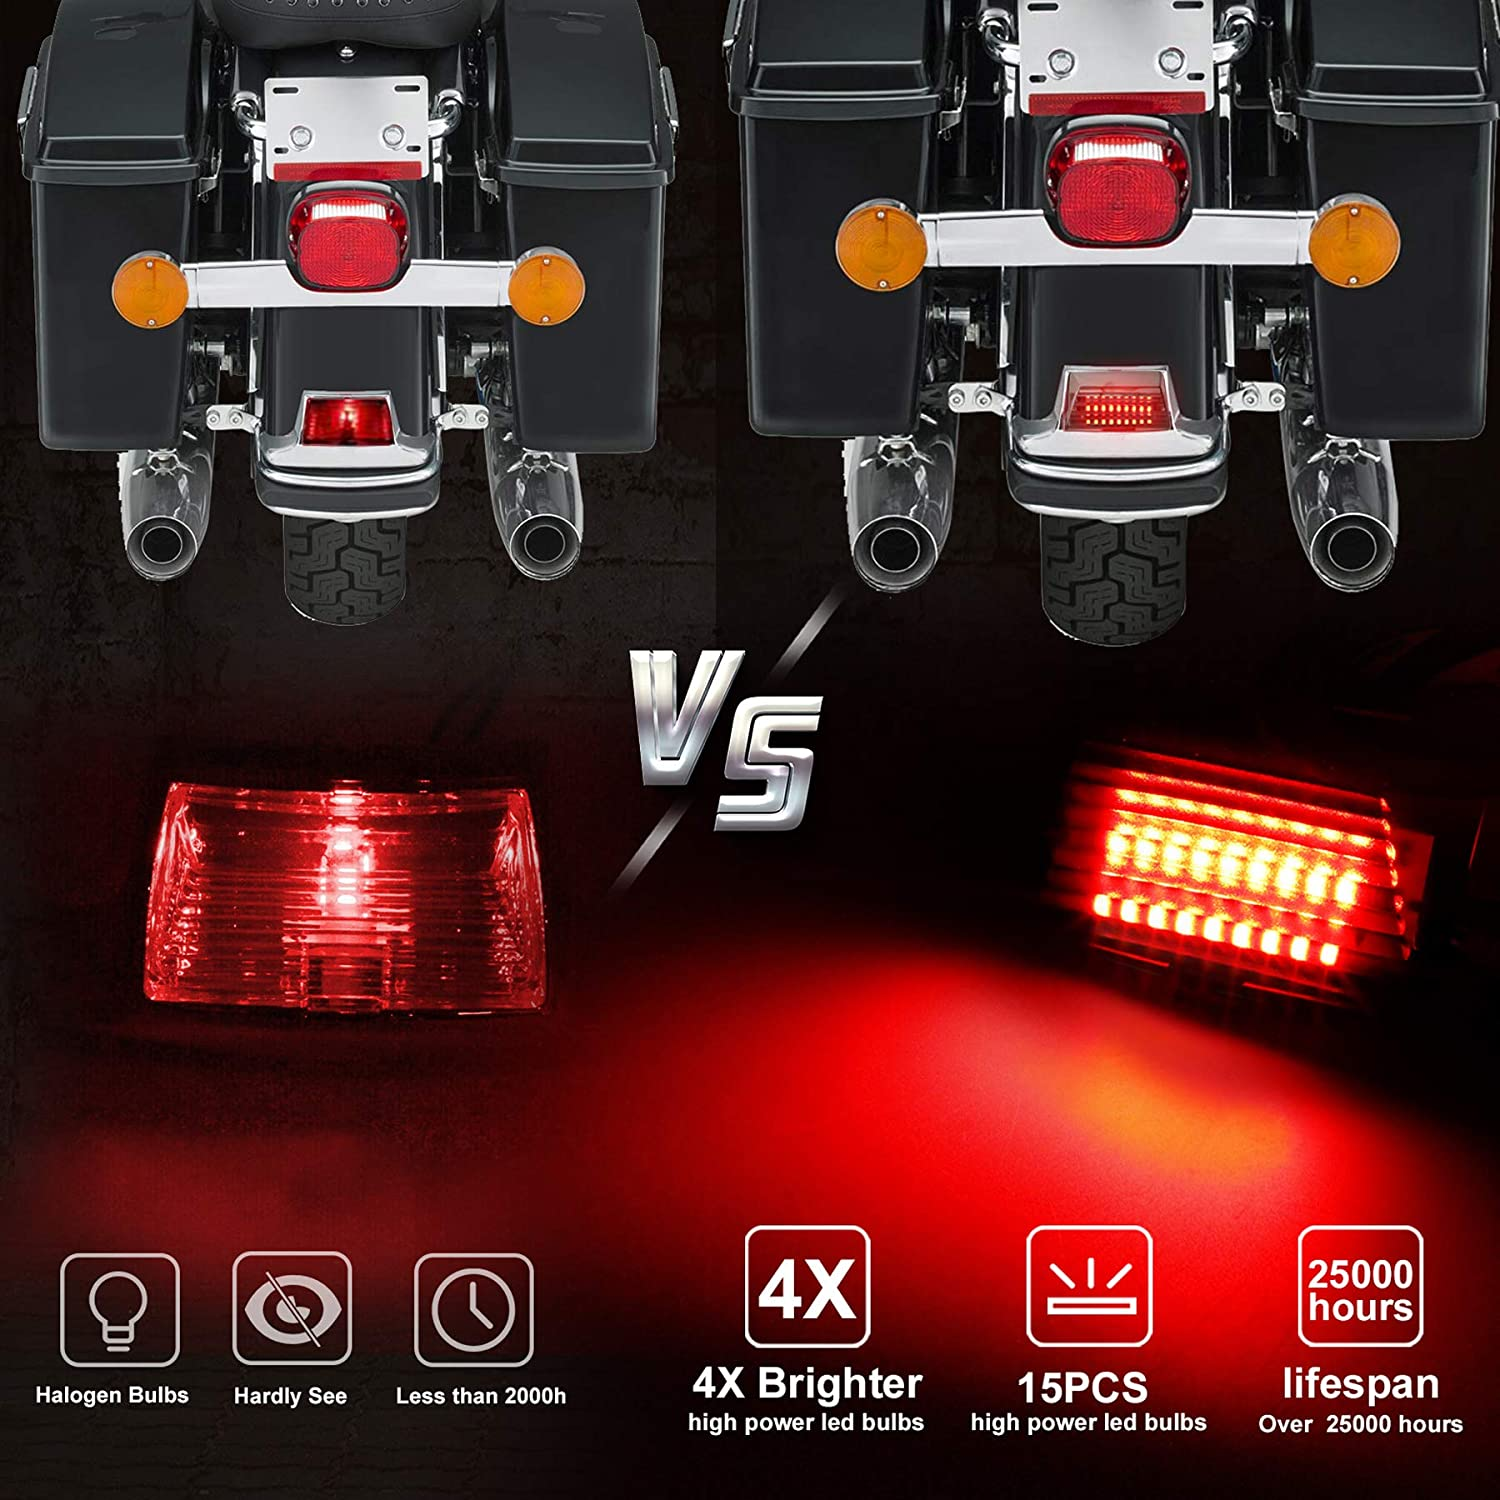 NTHREEAUTO Smoked Fender Tip Tail Light LED Rear Taillight Compatible with Harley Electra Glide Road Glide Touring Fatboy Softail Sportester FLHTC FLHTK FLTRU FLHTKL